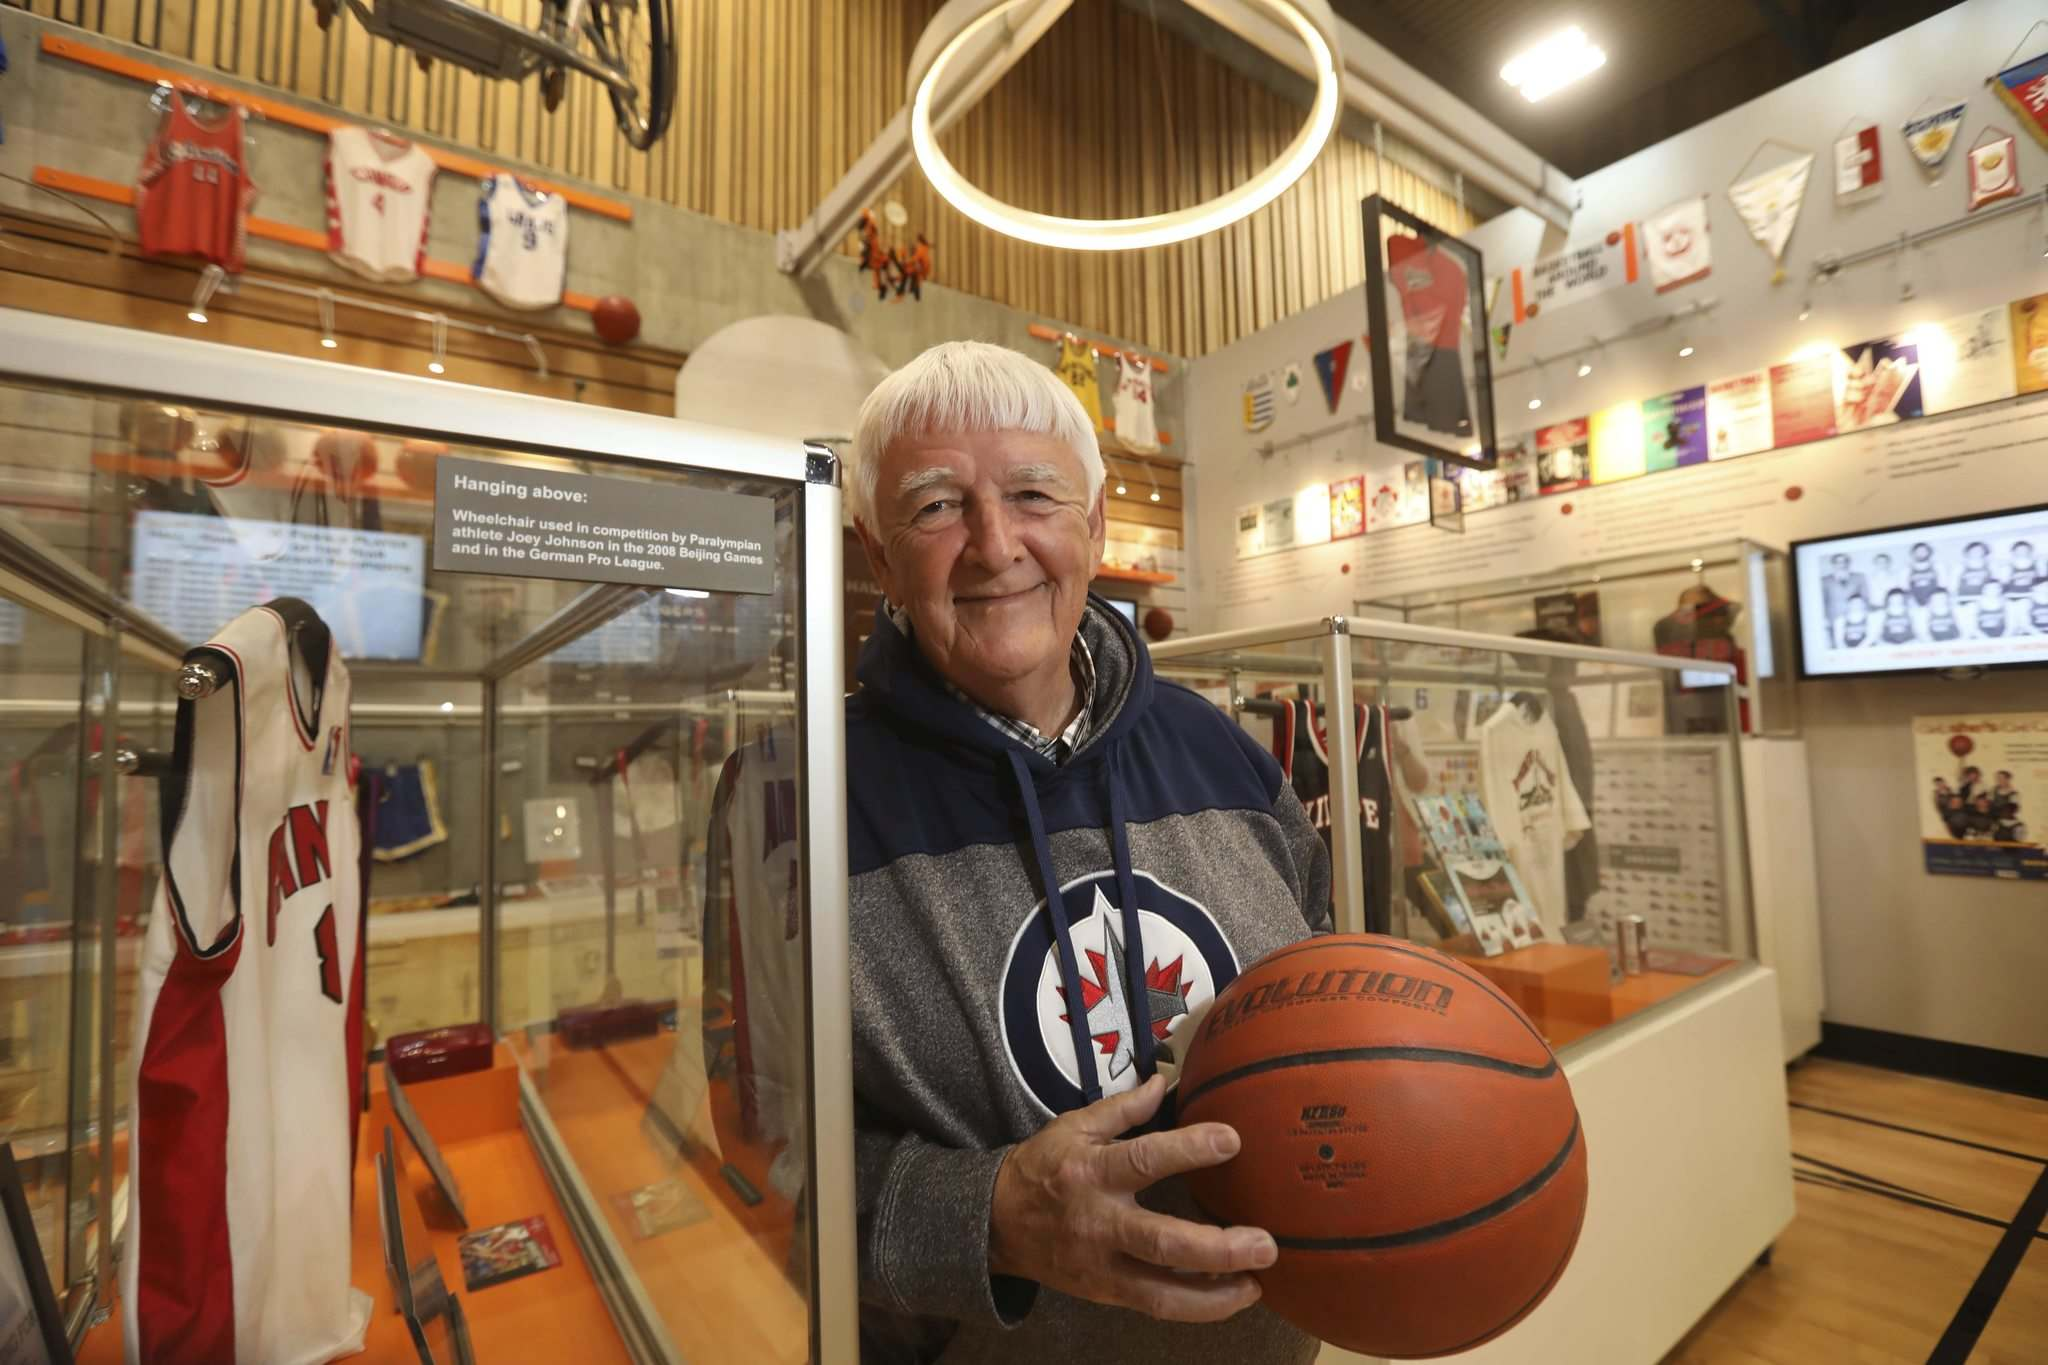 Photos by RUTH BONNEVILLE / WINNIPEG FREE PRESS</p><p>Larry Marquardson (top) is more comfortable being in the background, but the longtime coach will be front and centre as one of the inductees into the Manitoba Basketball Hall of Fame. Another supporter of basketball in the province, the late Dennis Alvestad, will also be inducted. He was represented by his widow, Betty Butler, at Tuesday's announcement.</p>